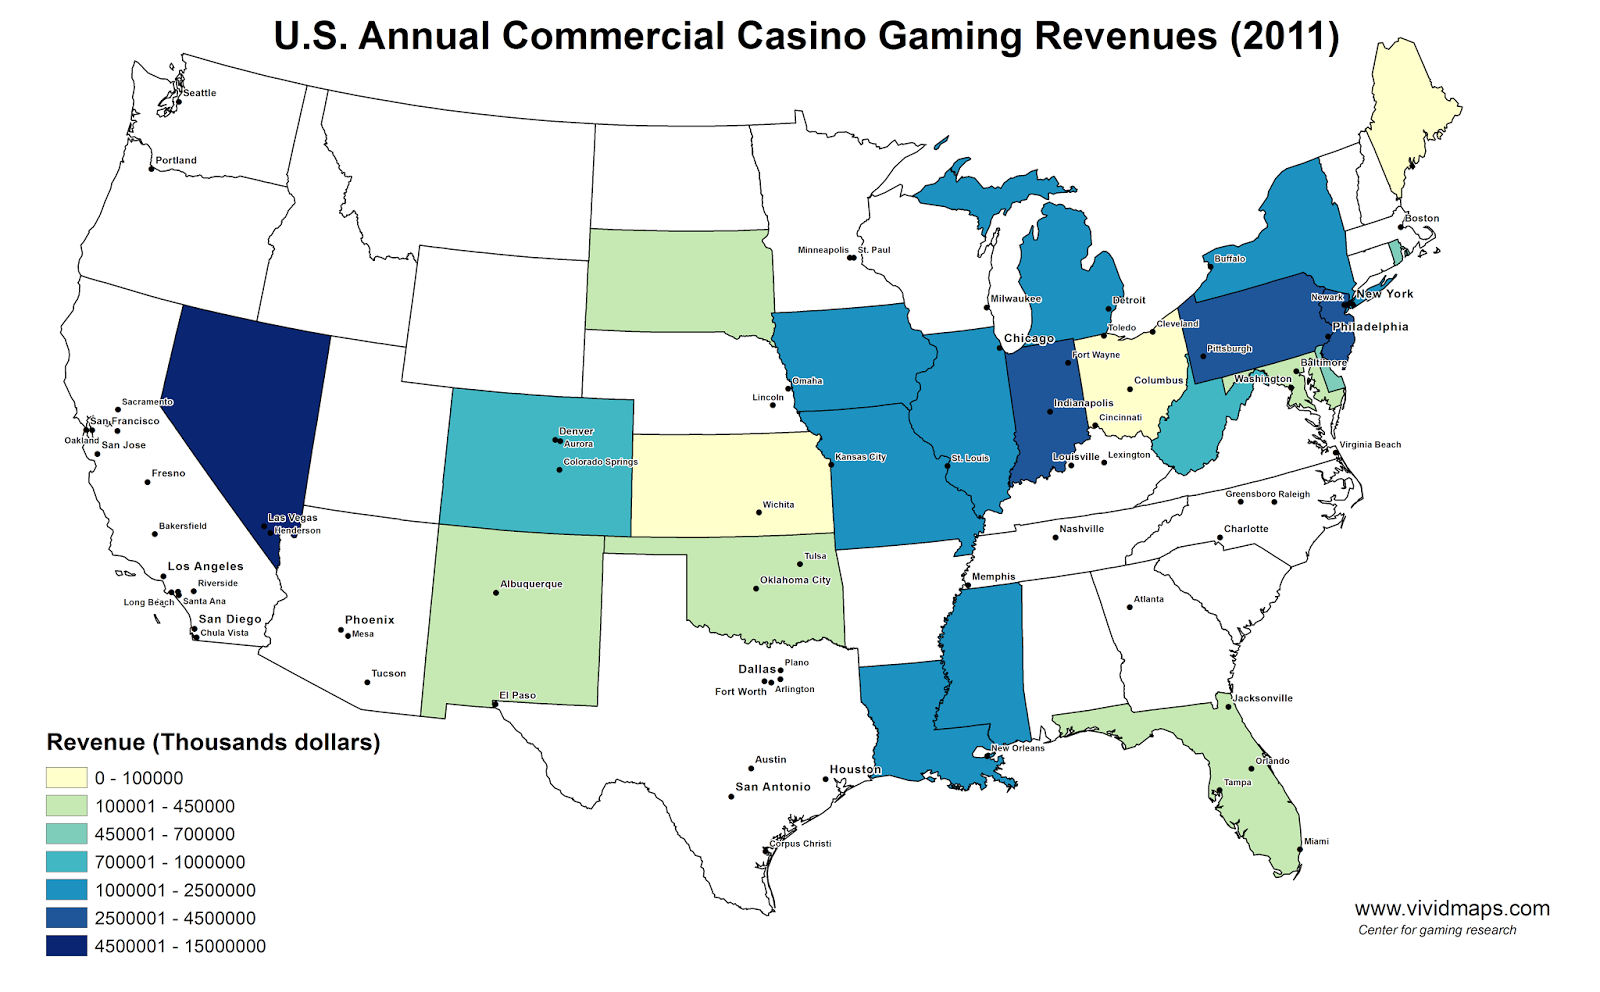 U.S. Annual Commercial Casino Gaming Revenues (2011)